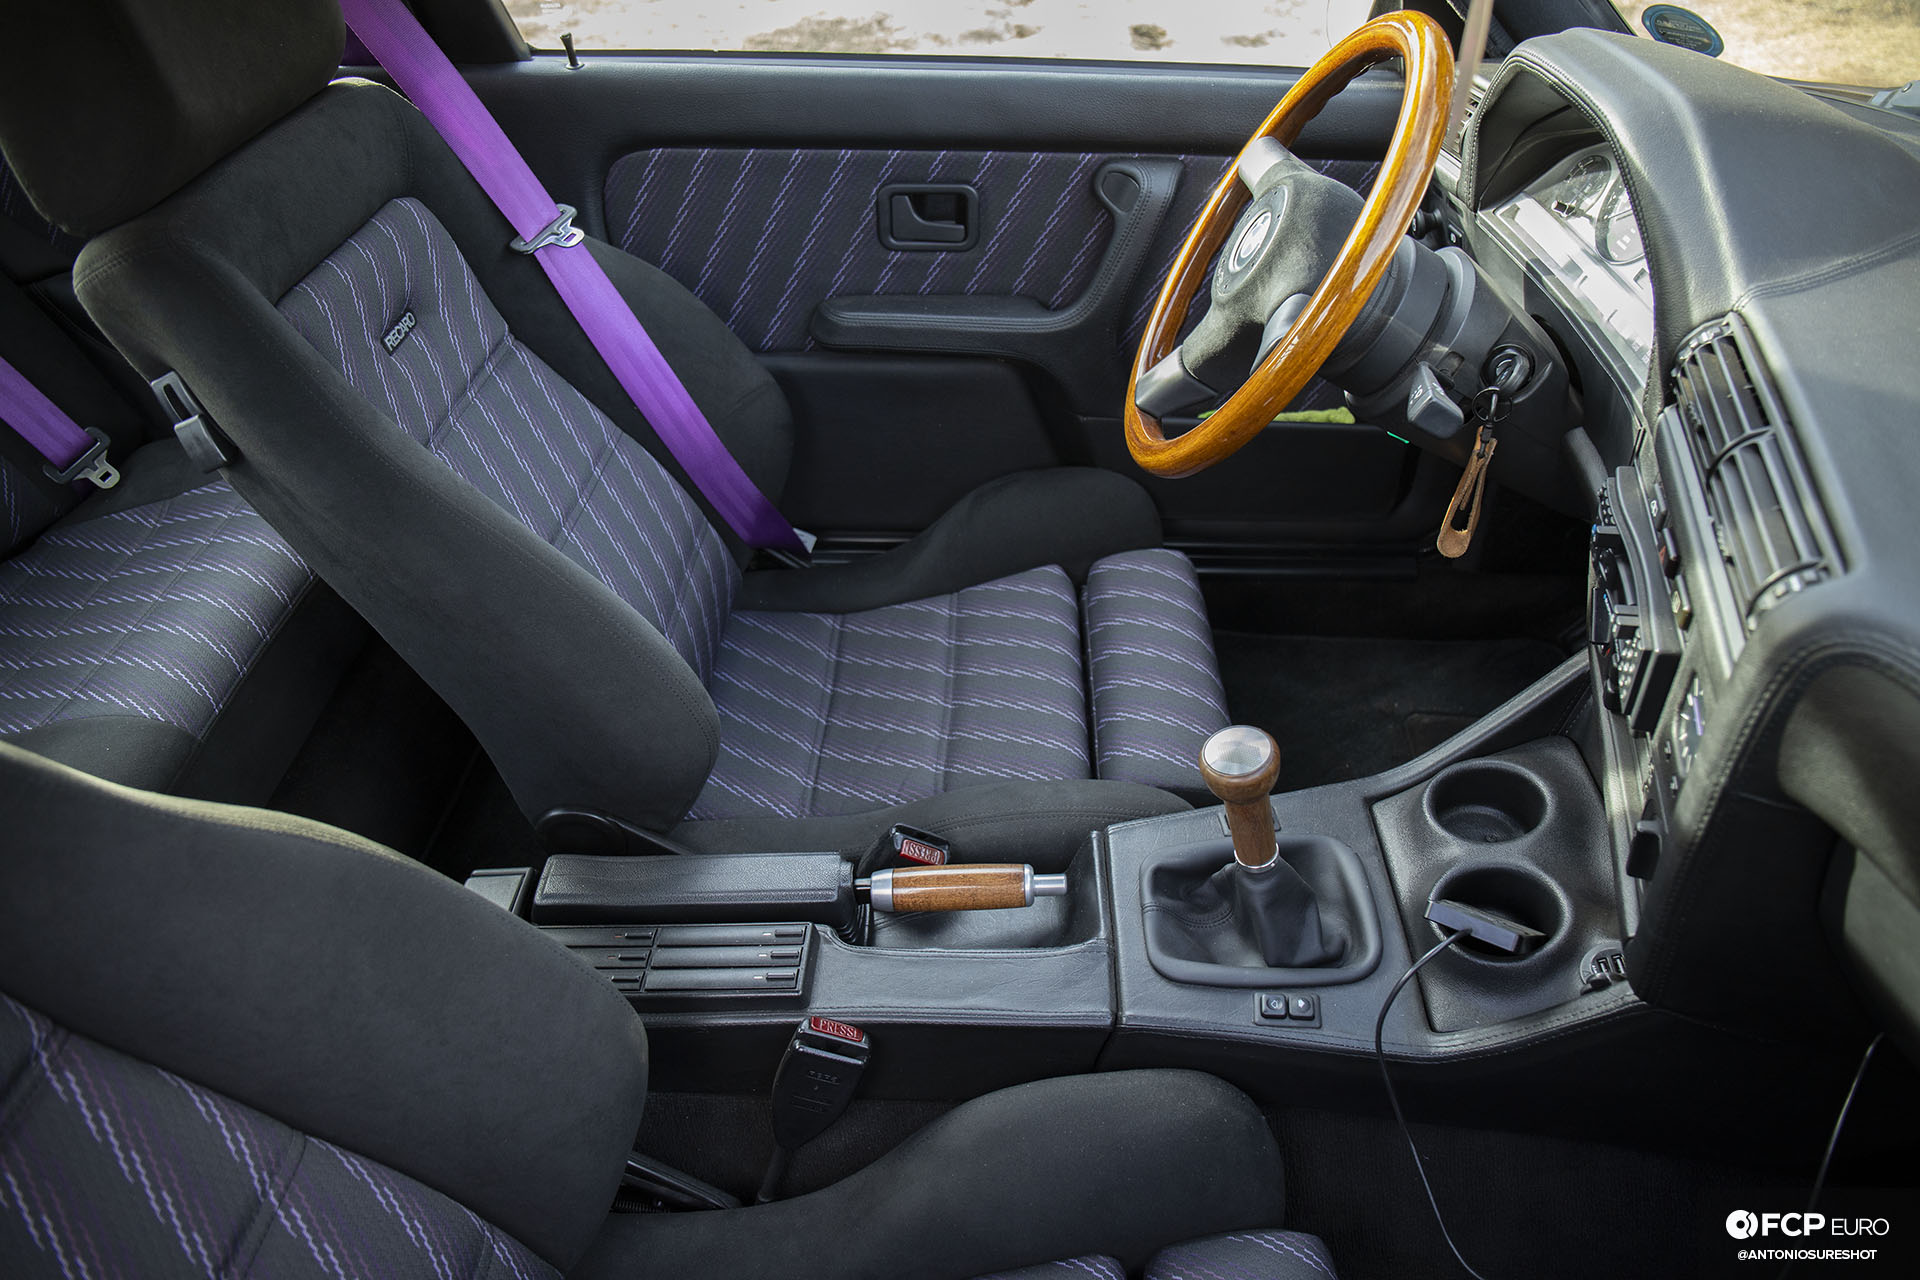 CAtuned Daytona Violet E30 BMW Interior